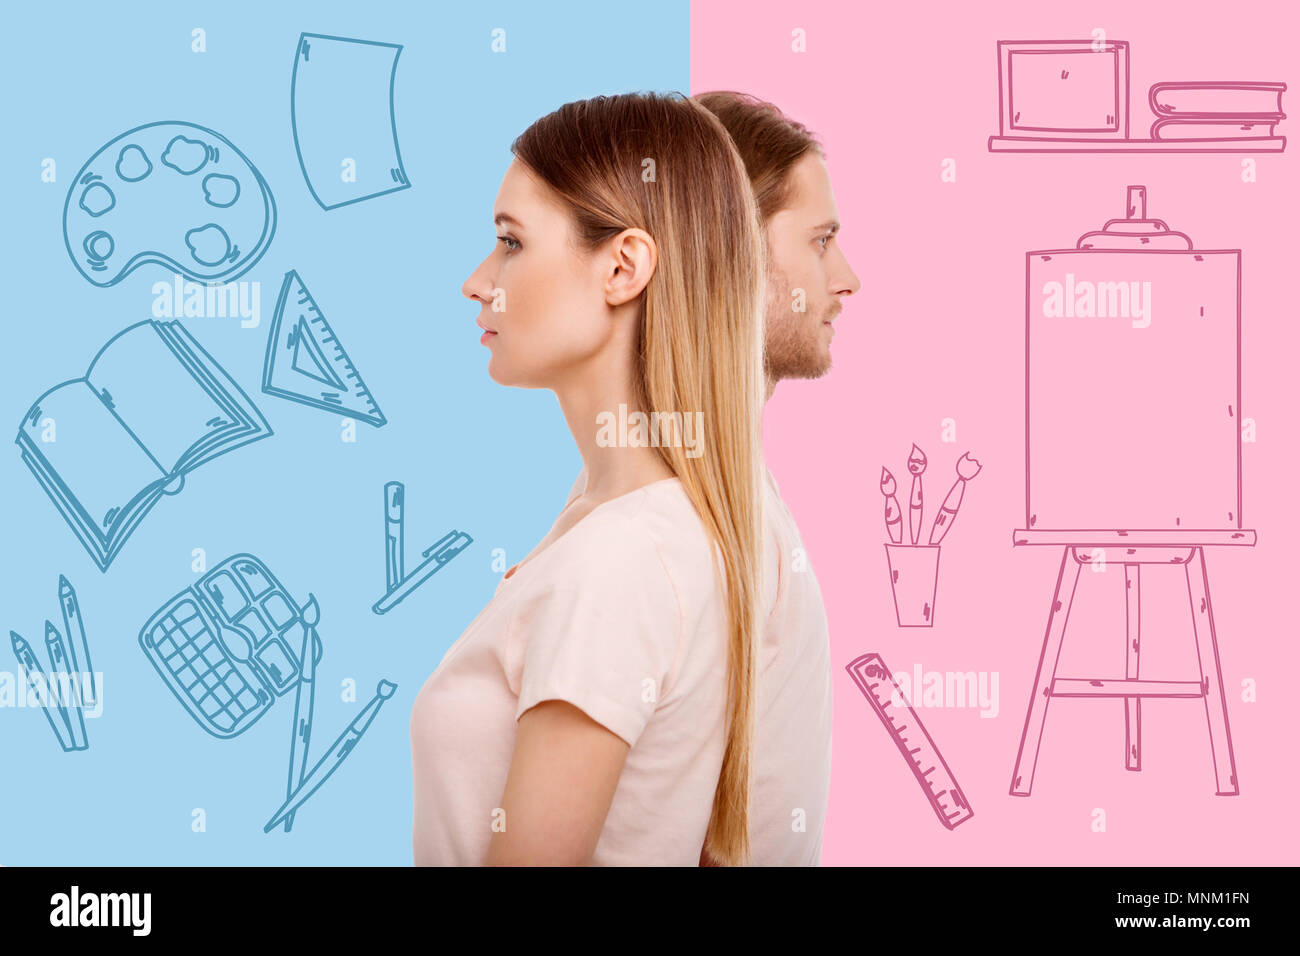 Creative painters feeling confident while preparing for a working day - Stock Image